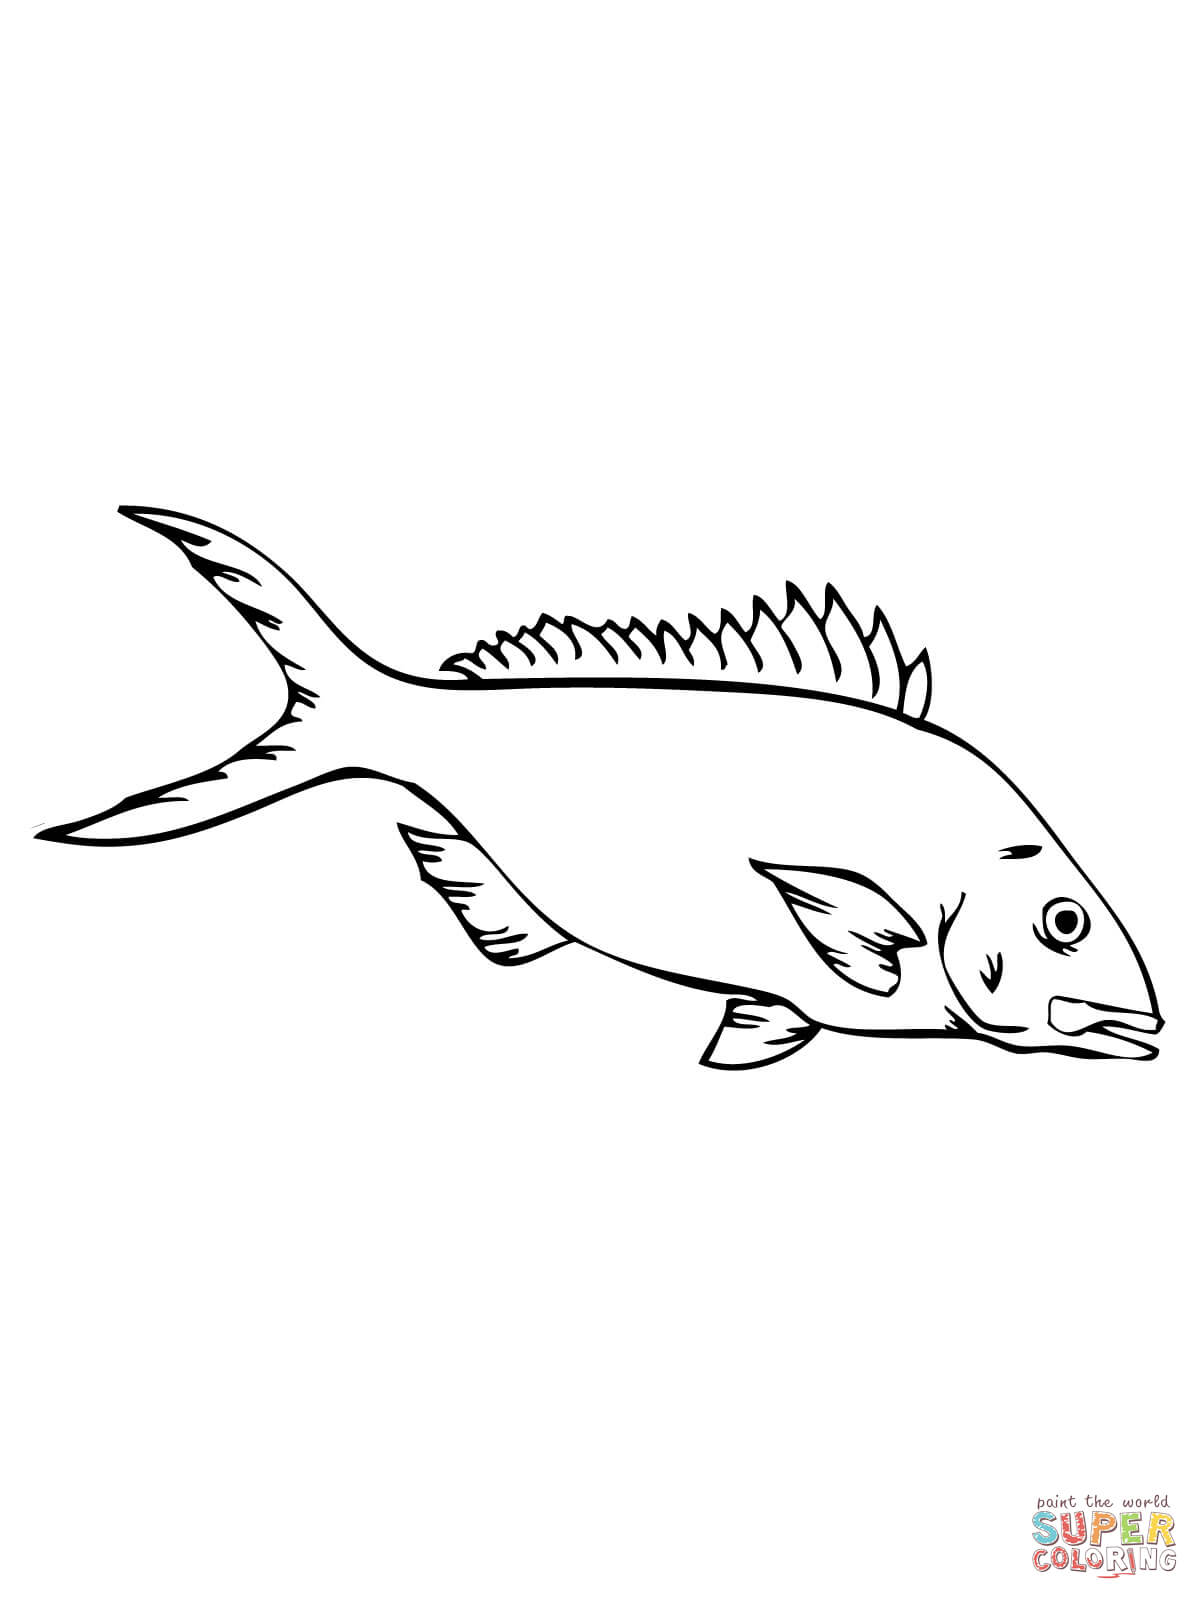 Yellowtail Snapper Coloring Page